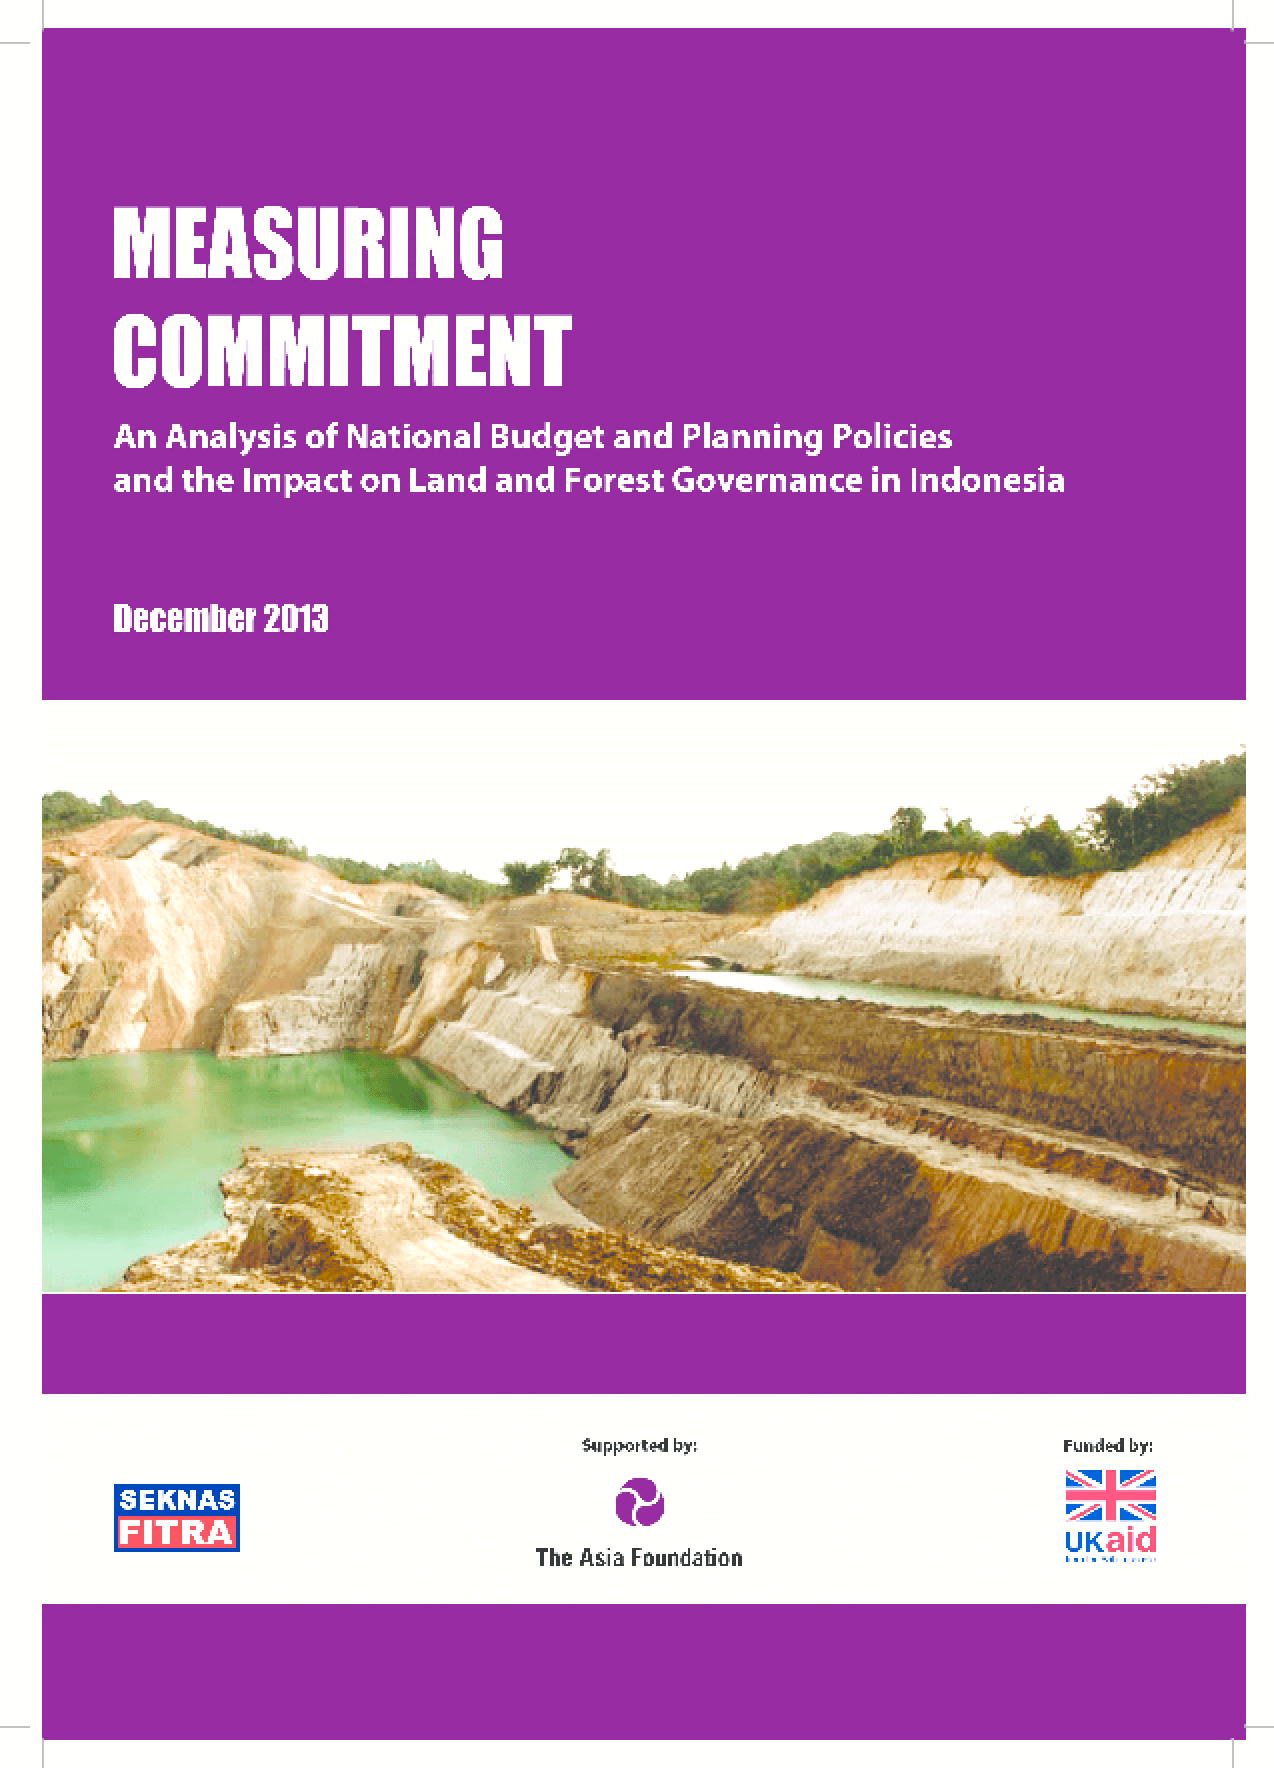 Measuring Commitment: An Analysis of National Budget and Planning Policies and the Impact on Land and Forest Governance in Indonesia